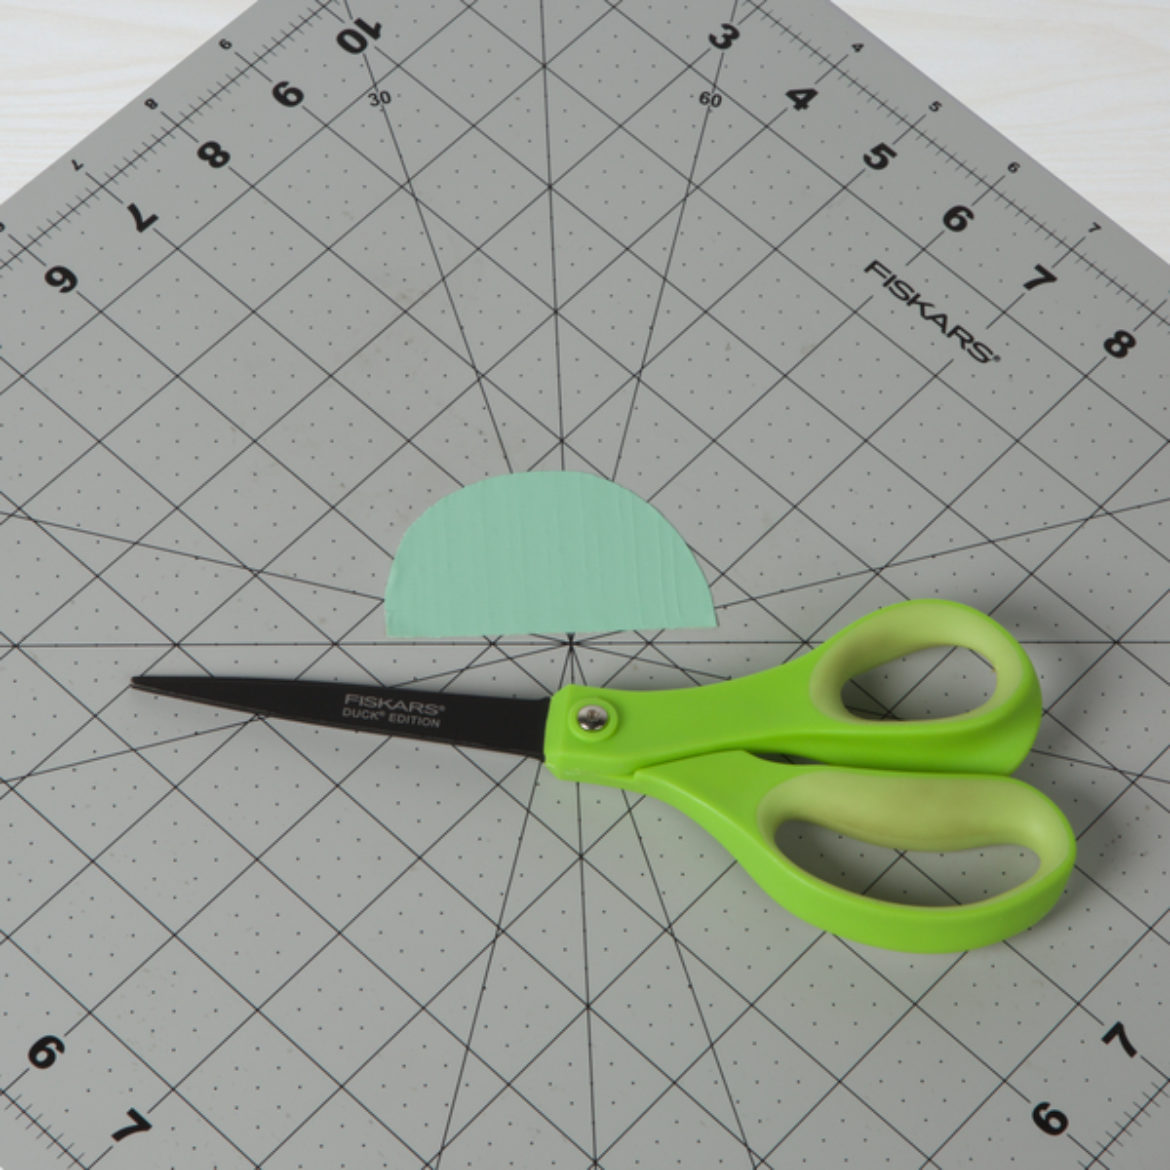 Half circle from previous step cut out.